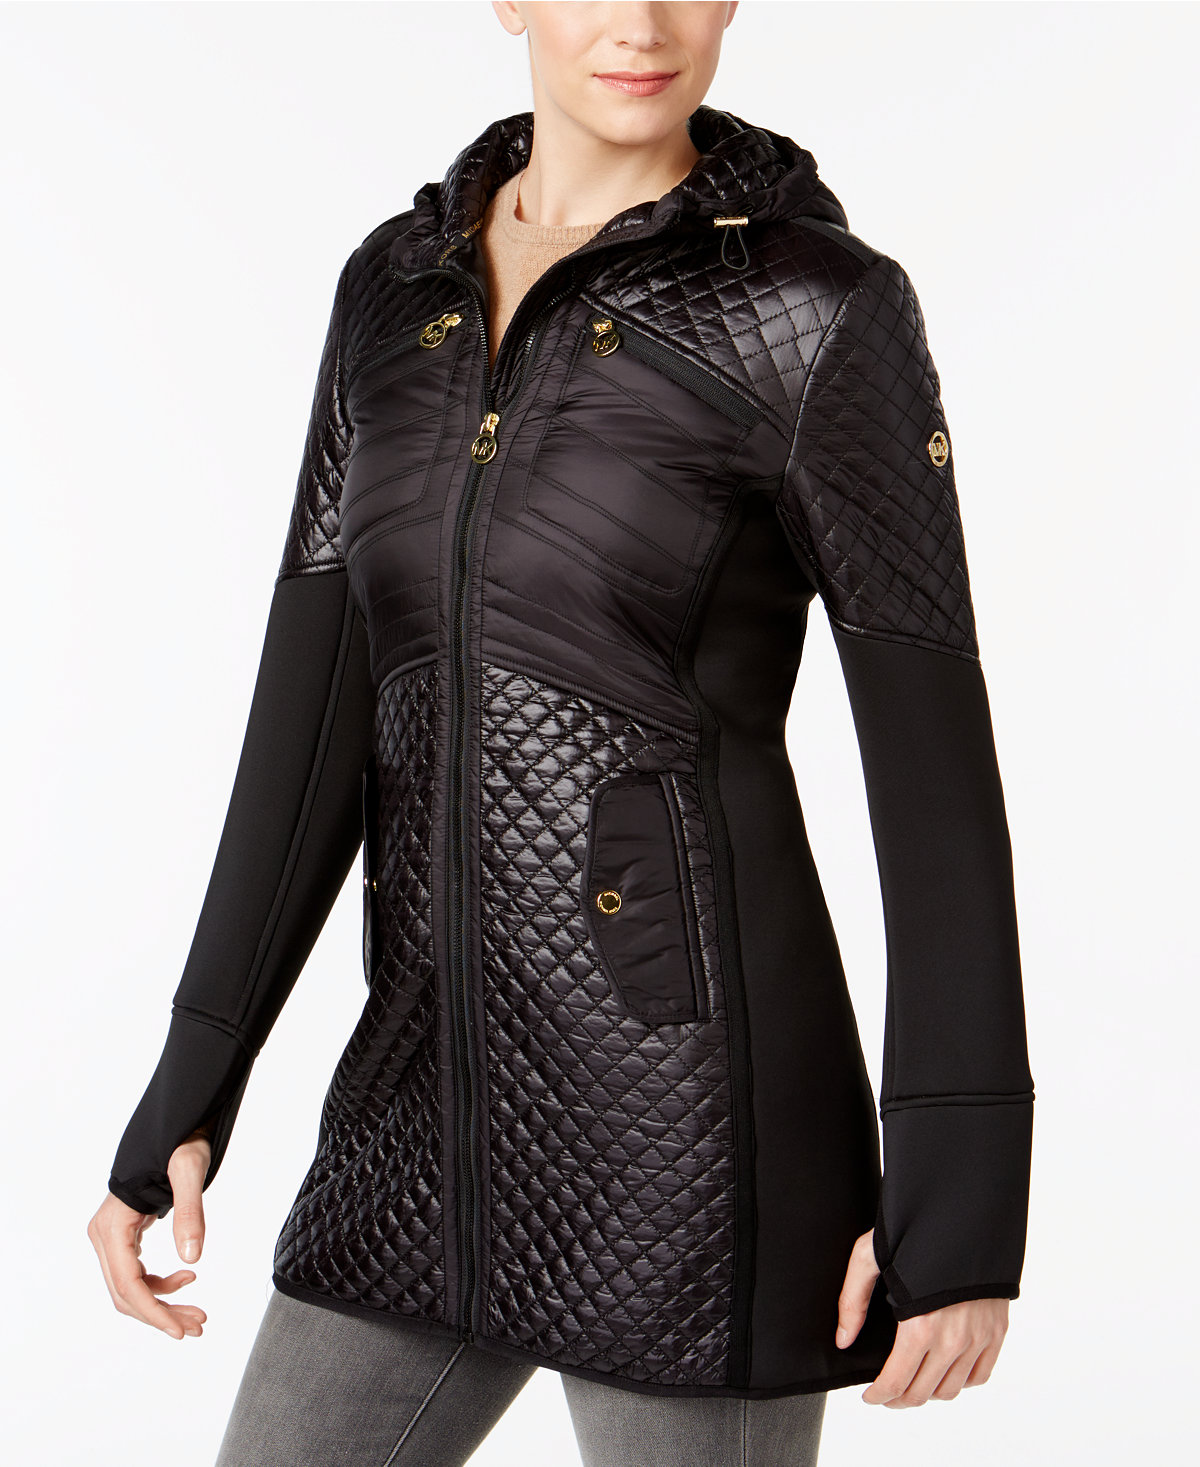 Michael Kors Winter Jackets